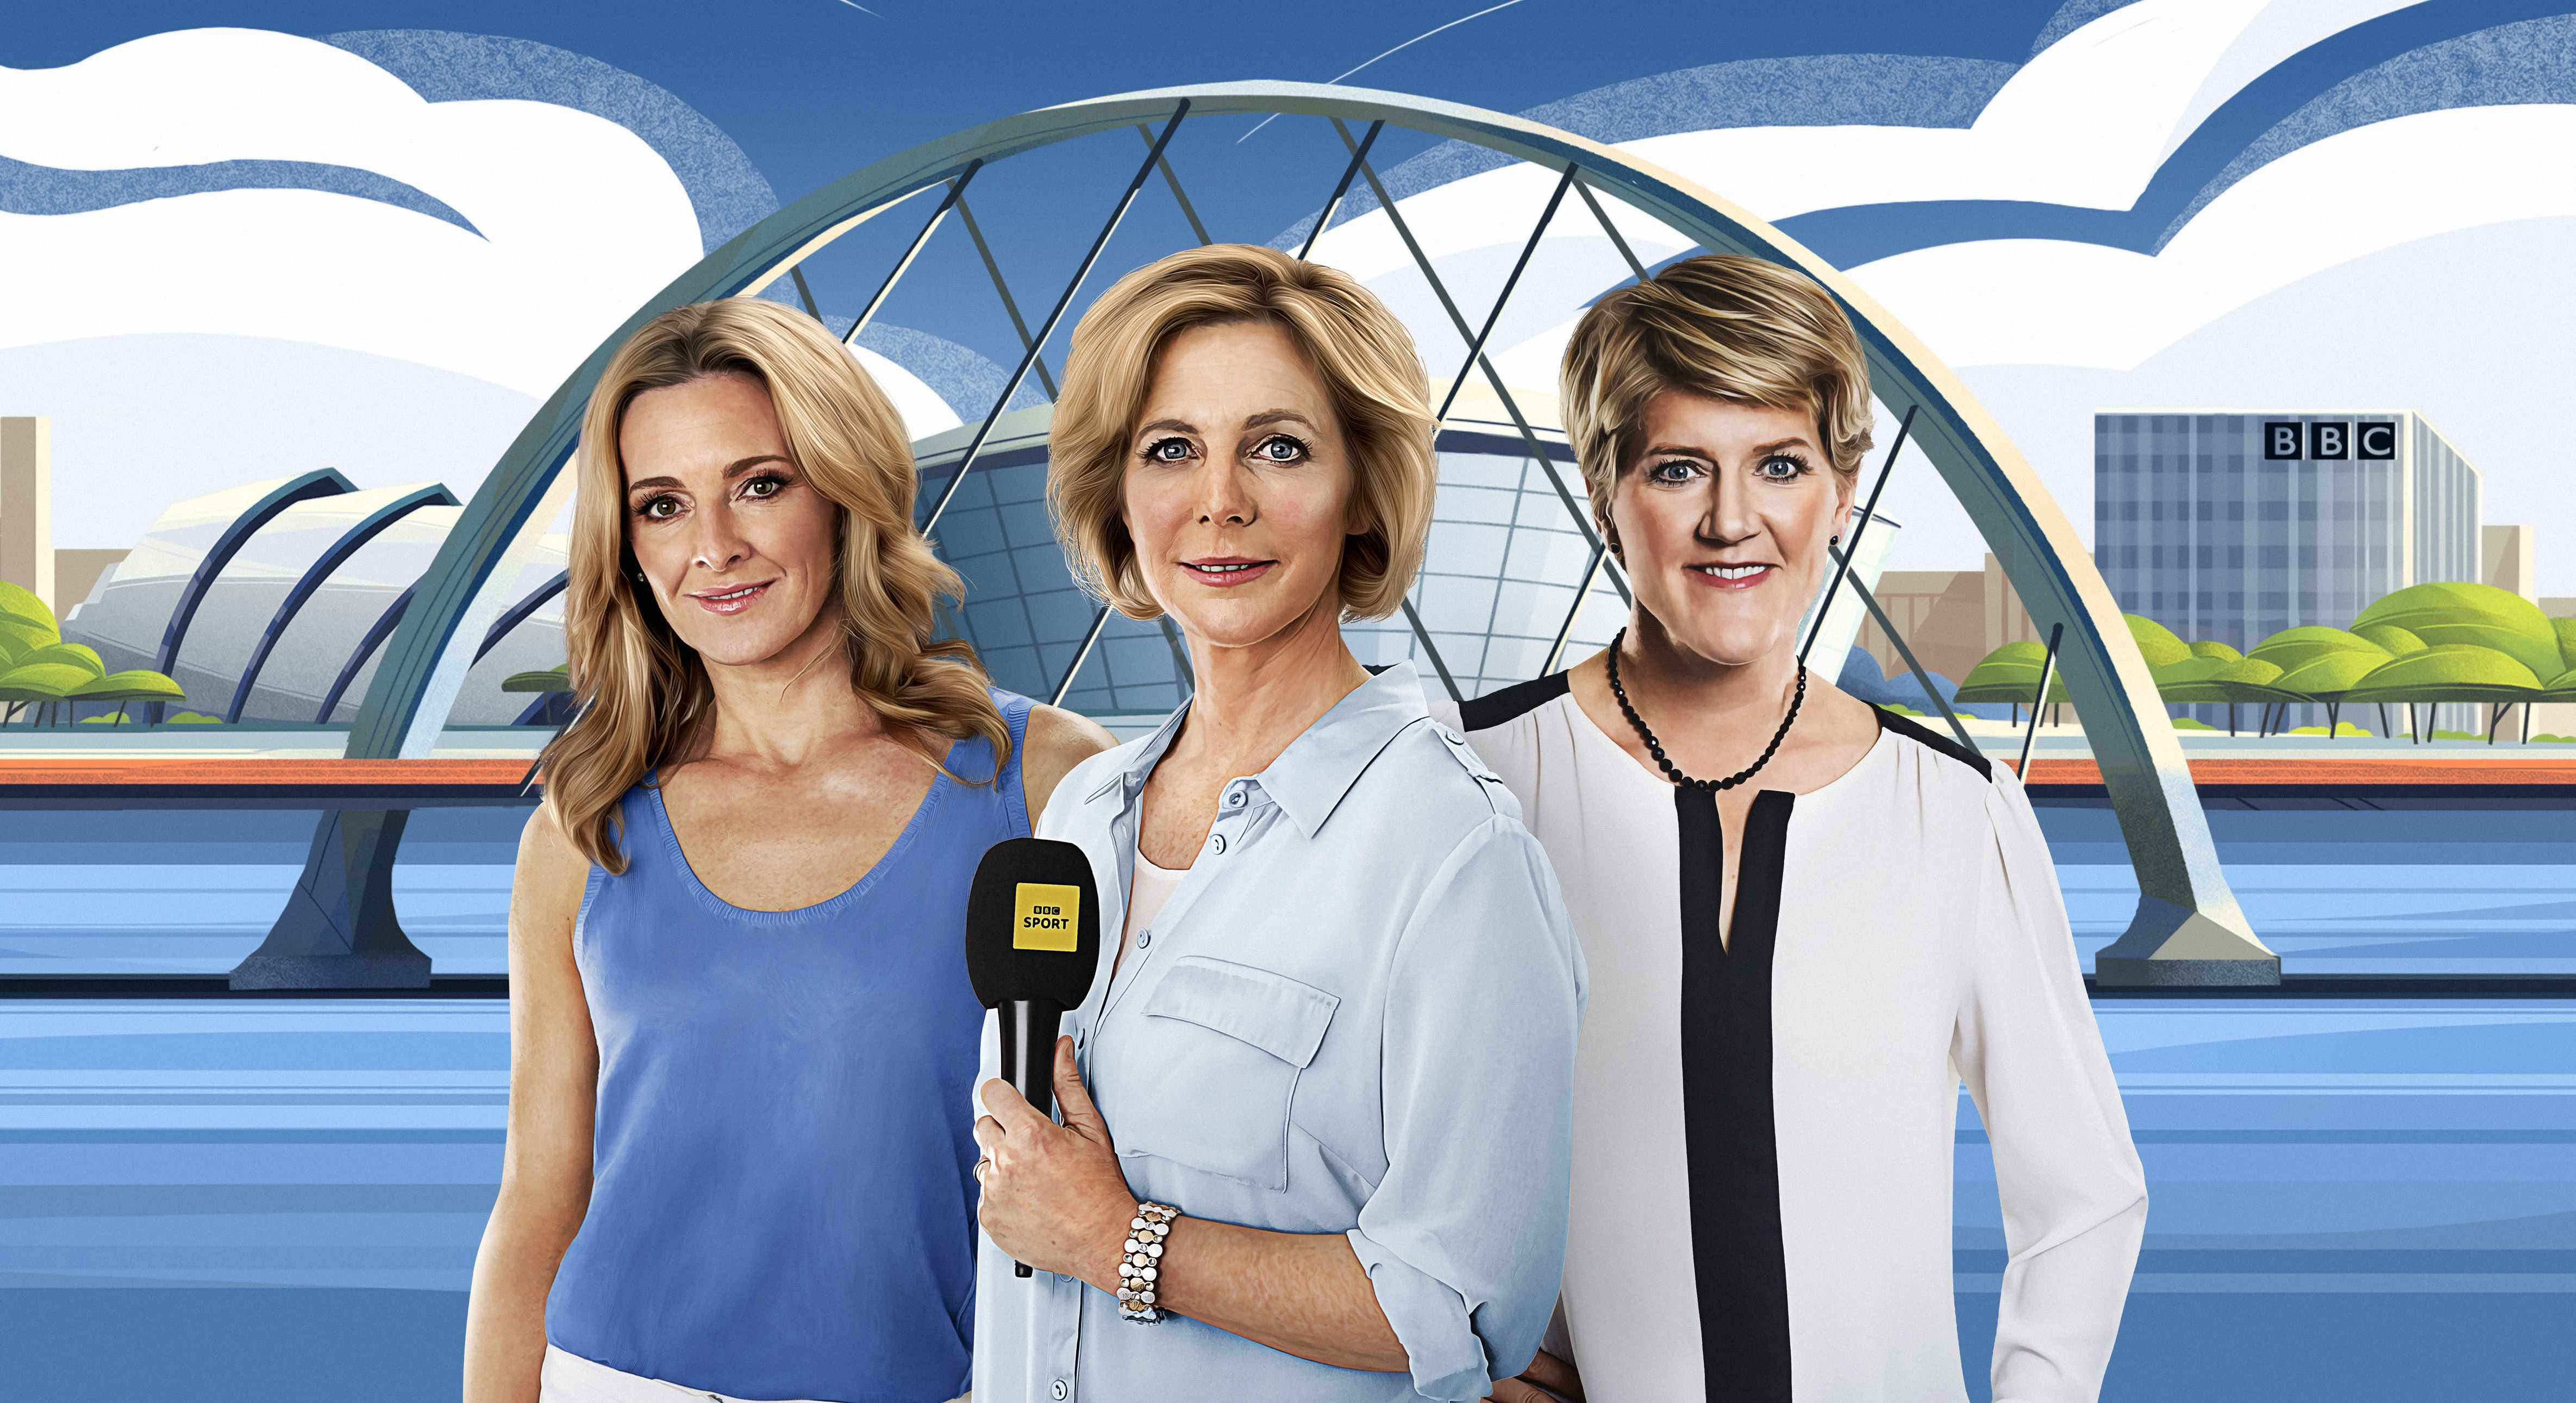 WARNING: Embargoed for publication until 10:00:01 on 24/07/2018 - Programme Name: Glasgow 2018 European Championships - TX: 02/08/2018 - Episode: Glasgow 2018 European Championships (No. n/a) - Picture Shows: ***STRICTLY EMBARGOED UNTIL 24/07/2018 10:00:01*** Gabby Logan, Hazel Irvine, Clare Balding - (C) BBC  - Photographer: N/A  TL